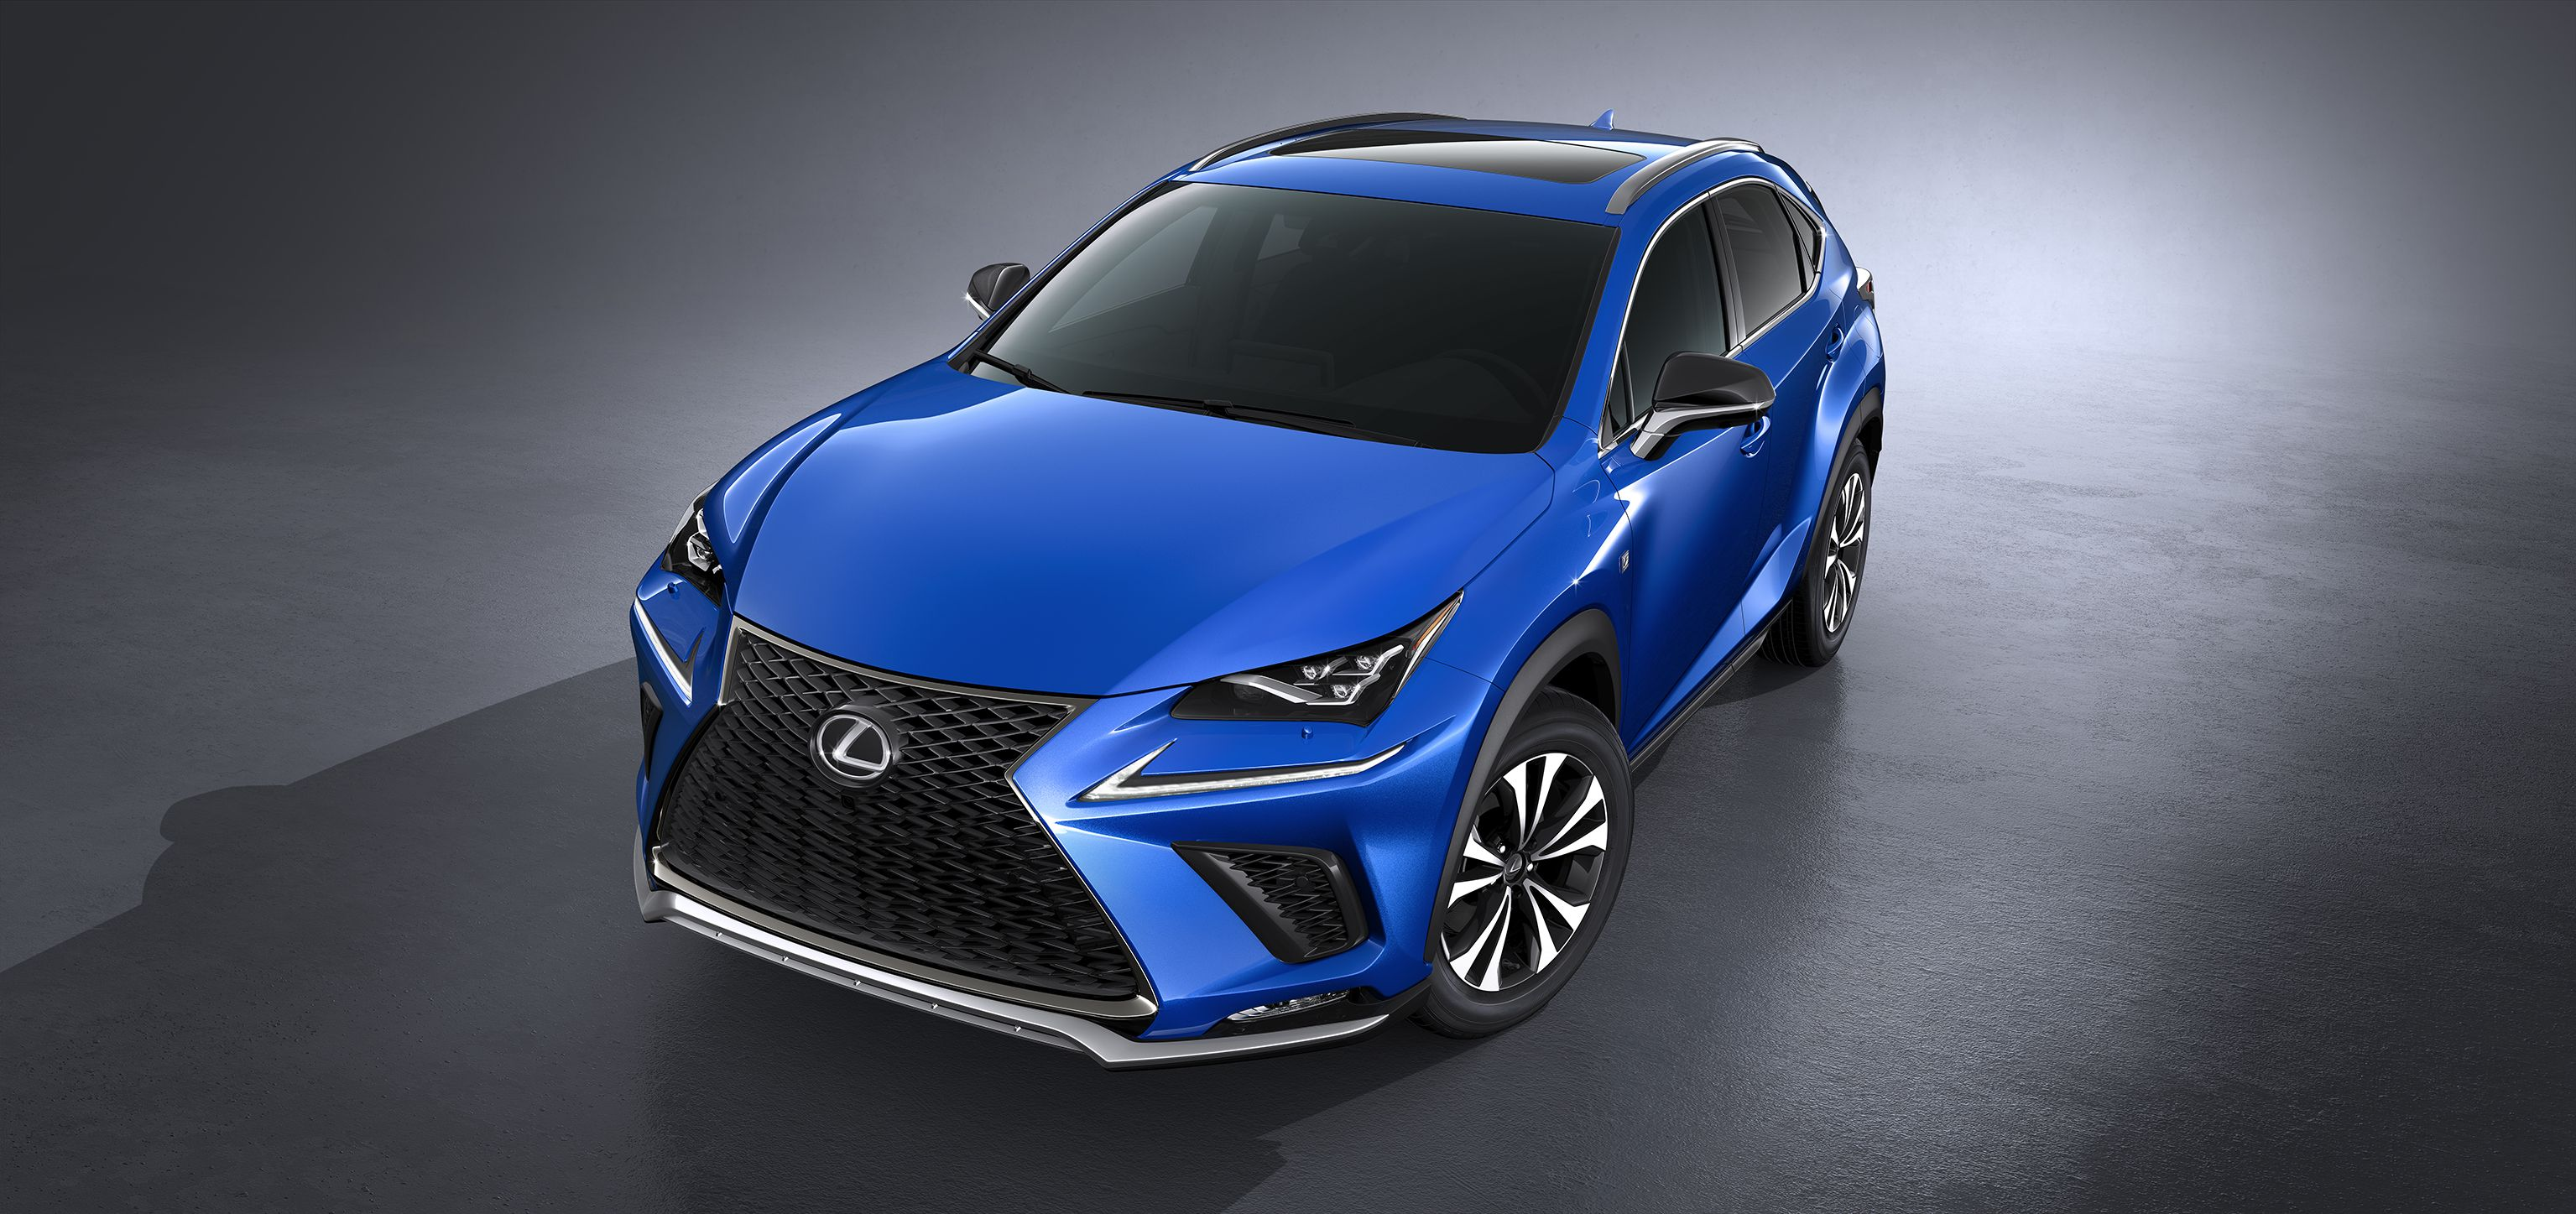 730d2e28a195b78a1d386a295bbb9b20 Take A Look About Lexus Link with Exciting Gallery Cars Review